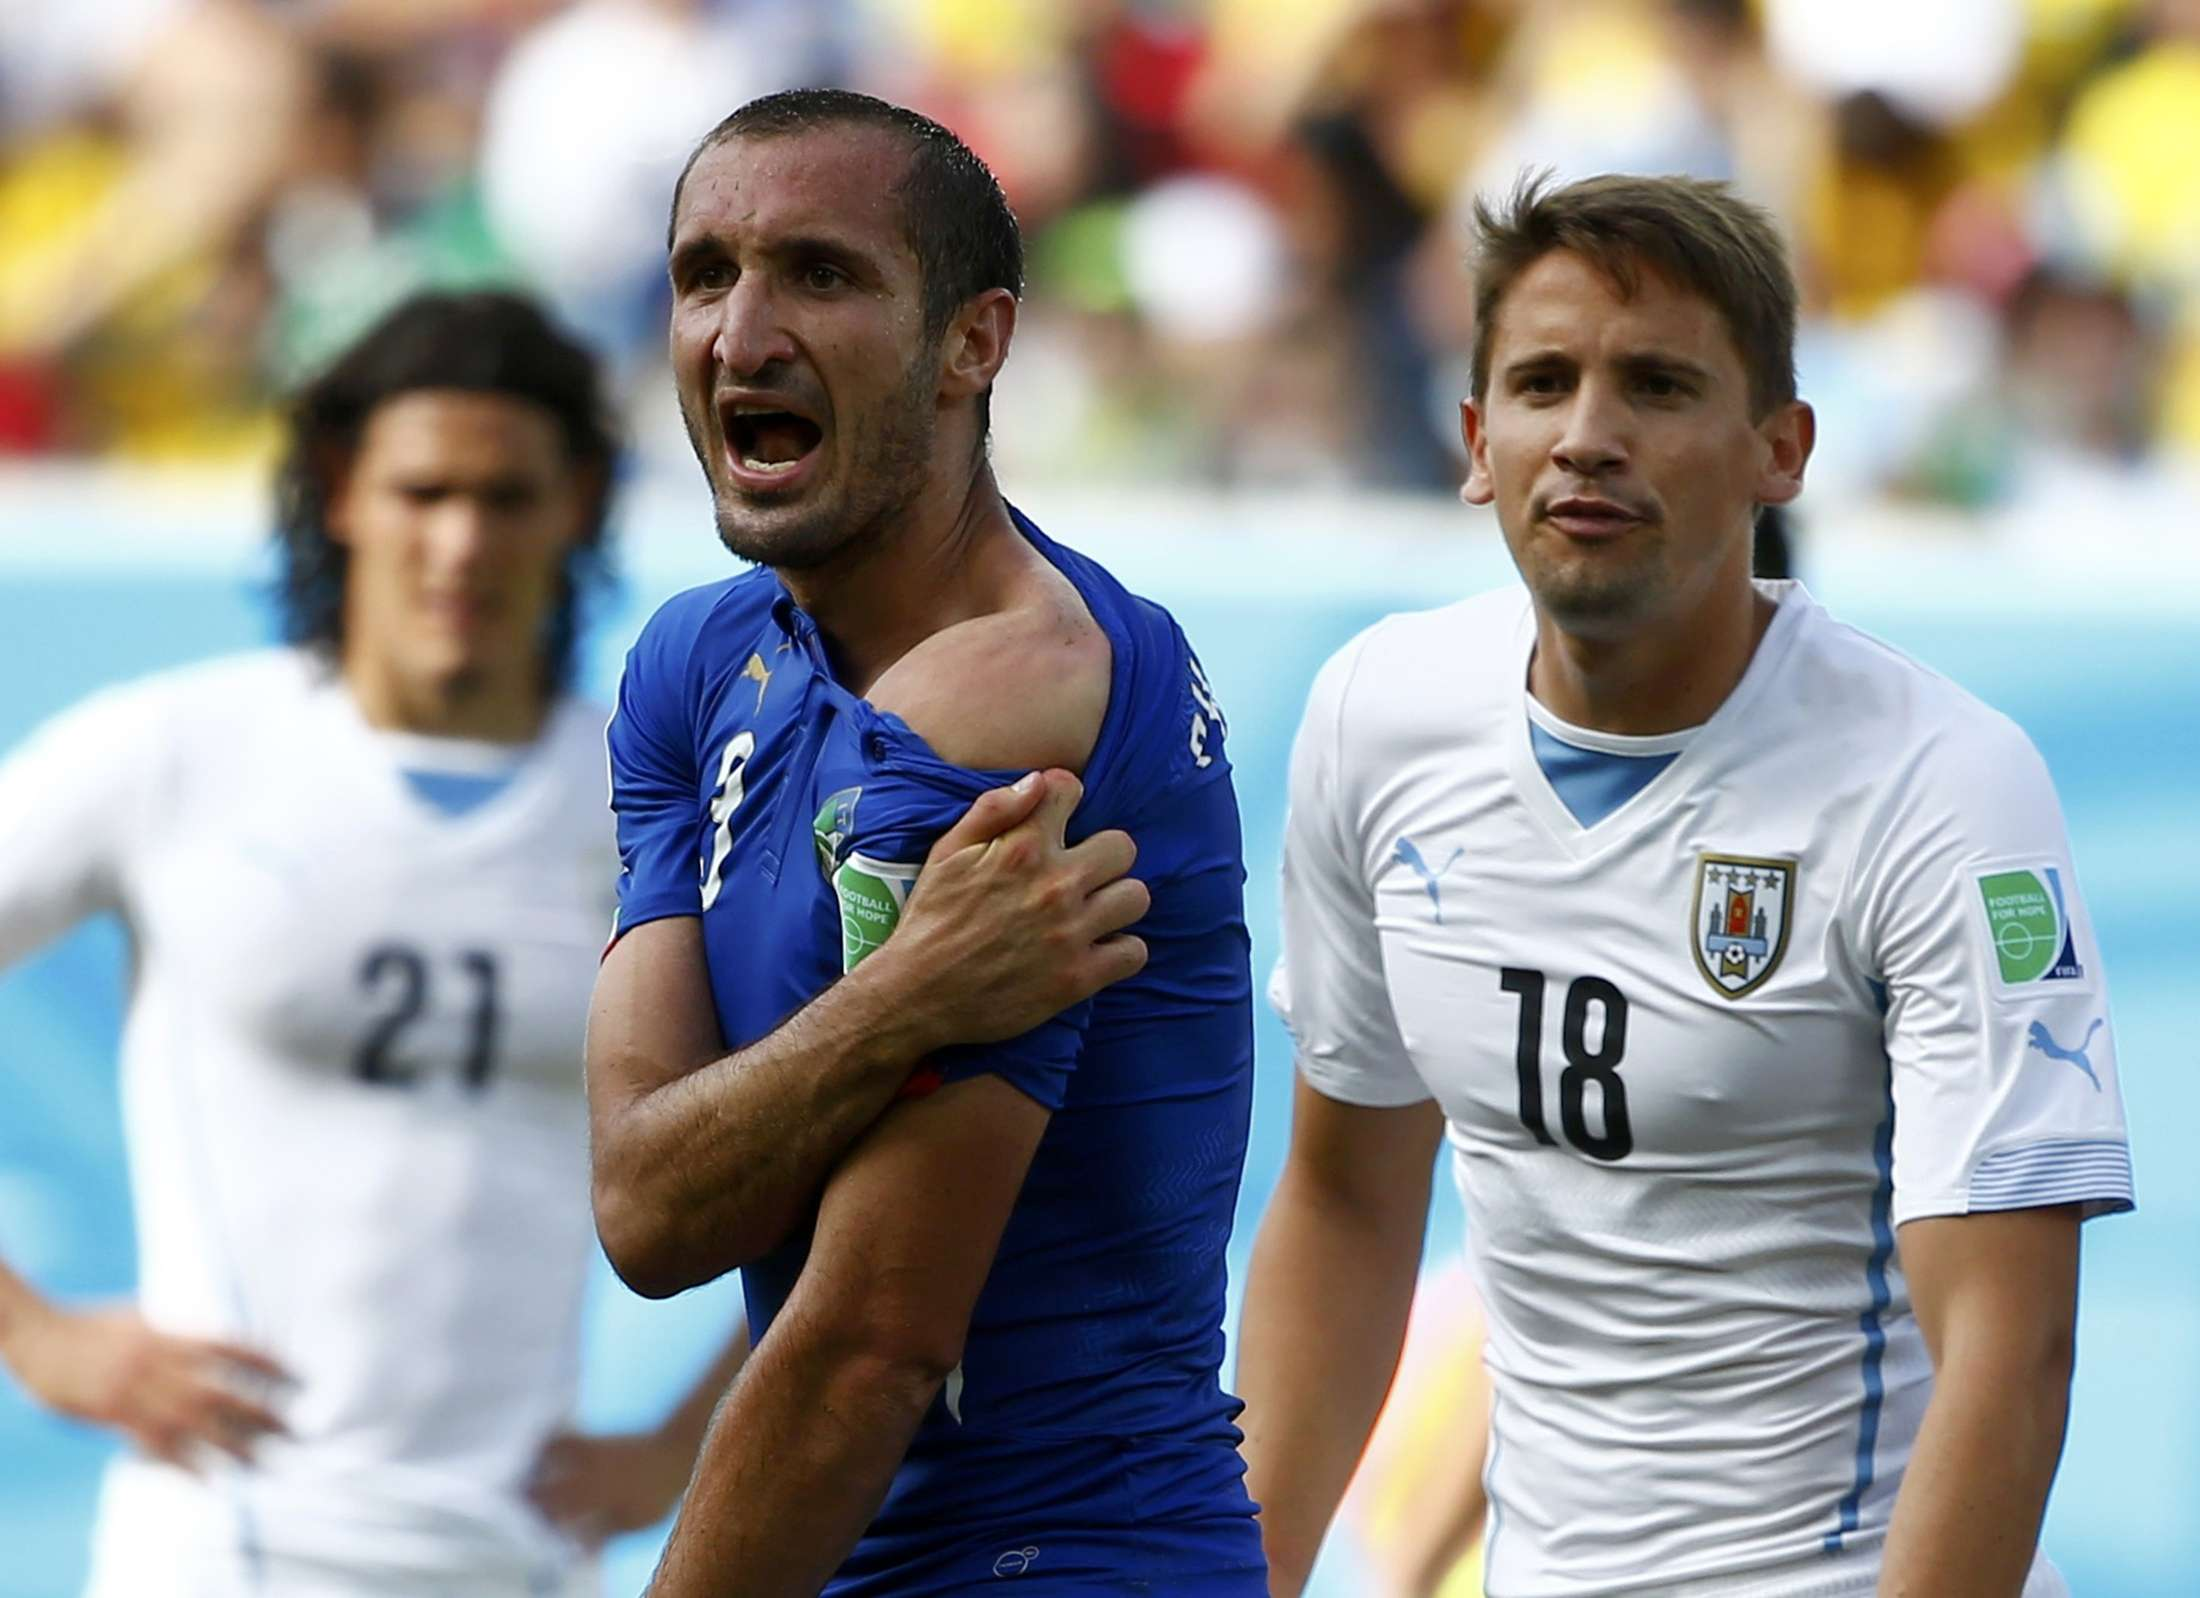 Italy's Giorgio Chiellini shows his shoulder, claiming he was bitten by Uruguay's Luis Suarez, during their 2014 World Cup Group D soccer match at the Dunas arena in Natal June 24, 2014. REUTERS/Tony Gentile (BRAZIL - Tags: SOCCER SPORT WORLD CUP TPX IMAGES OF THE DAY) Foto: TONY GENTILE/REUTERS